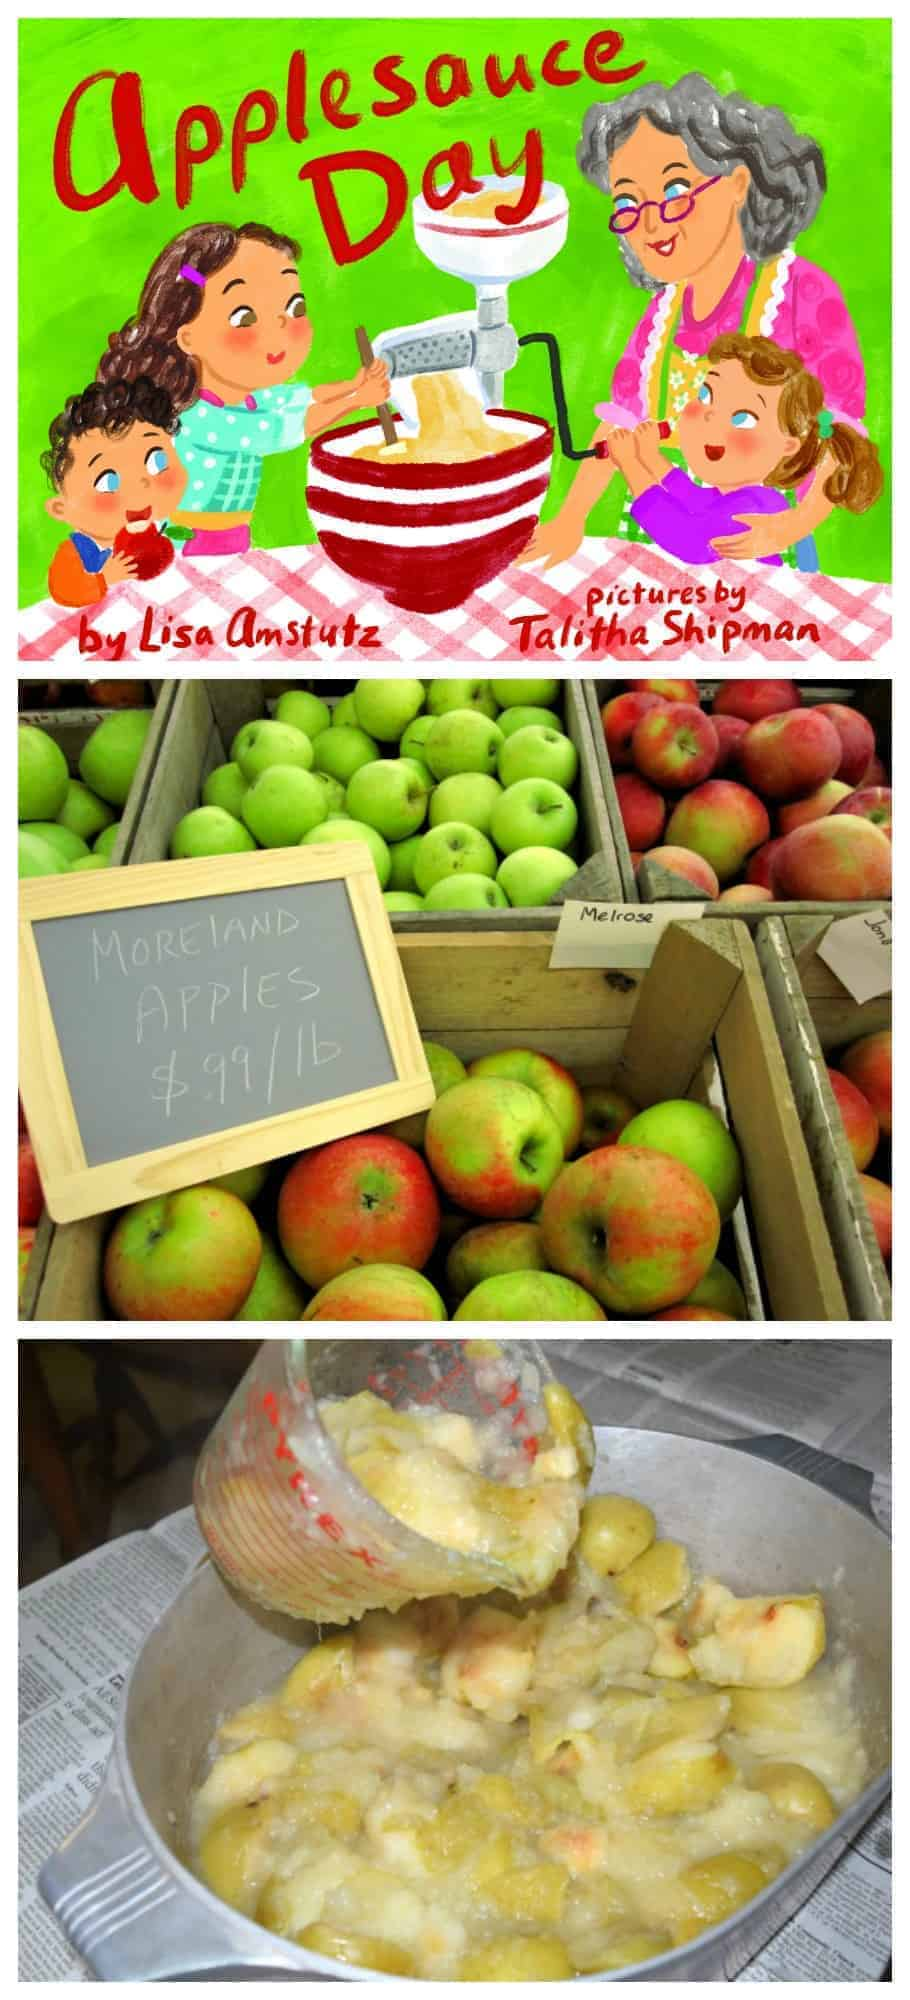 Applesauce Recipe, Apple Children's Books, and Apple Activities Perfect for Fall